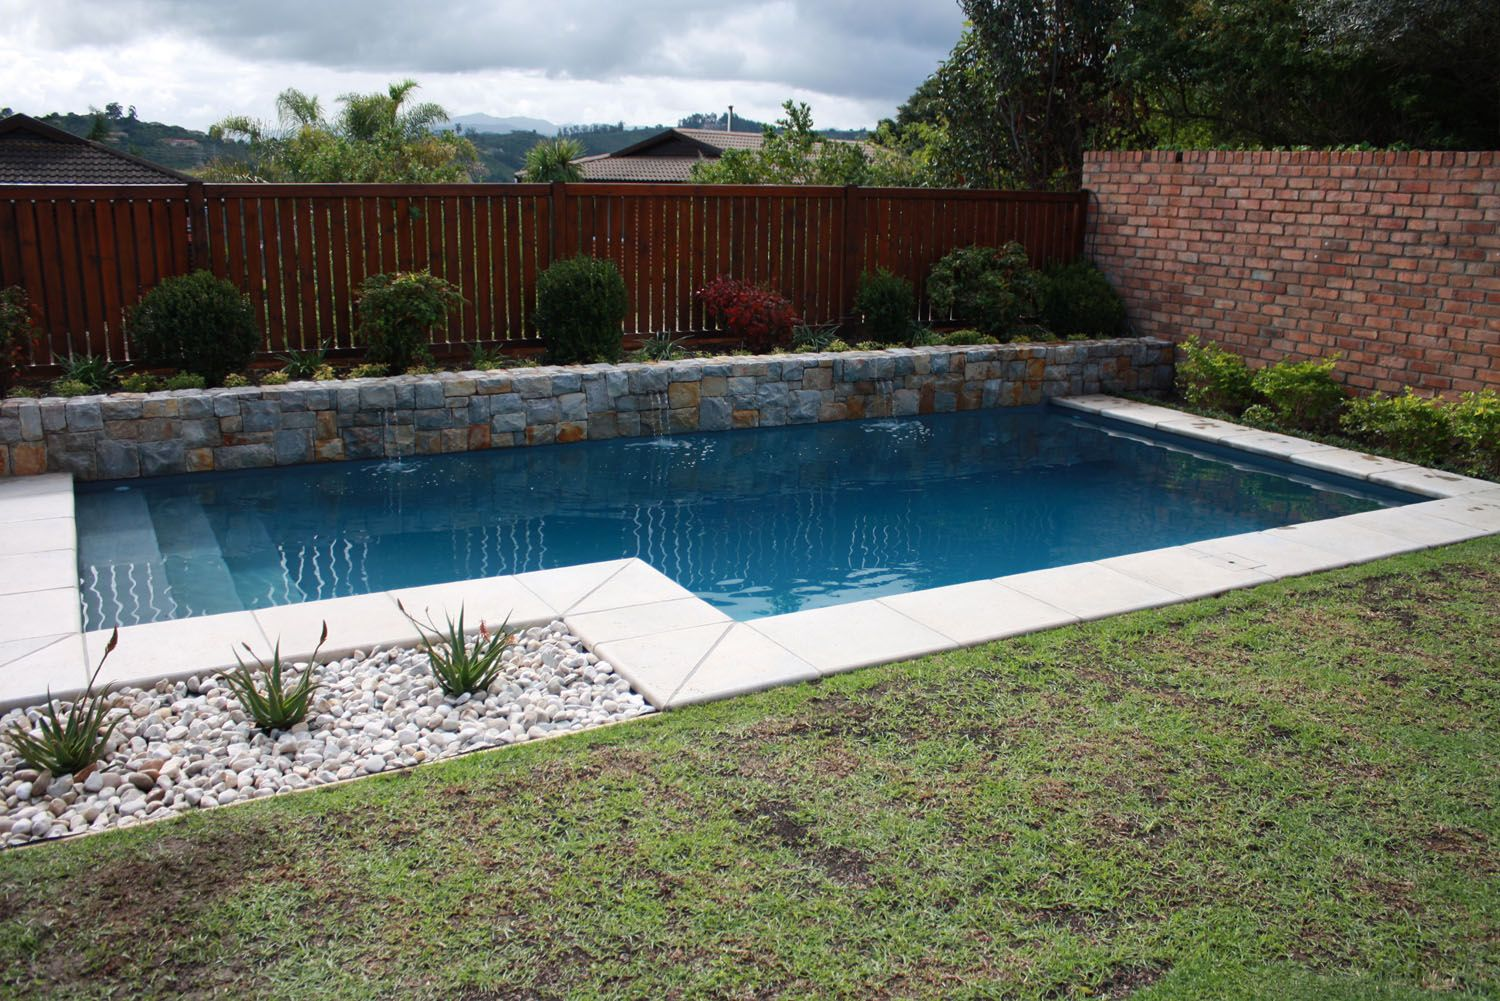 Island Pools Project Gallery Luxury Custom Designed Pools South Africa Pool Natural Pool Swimming Pools